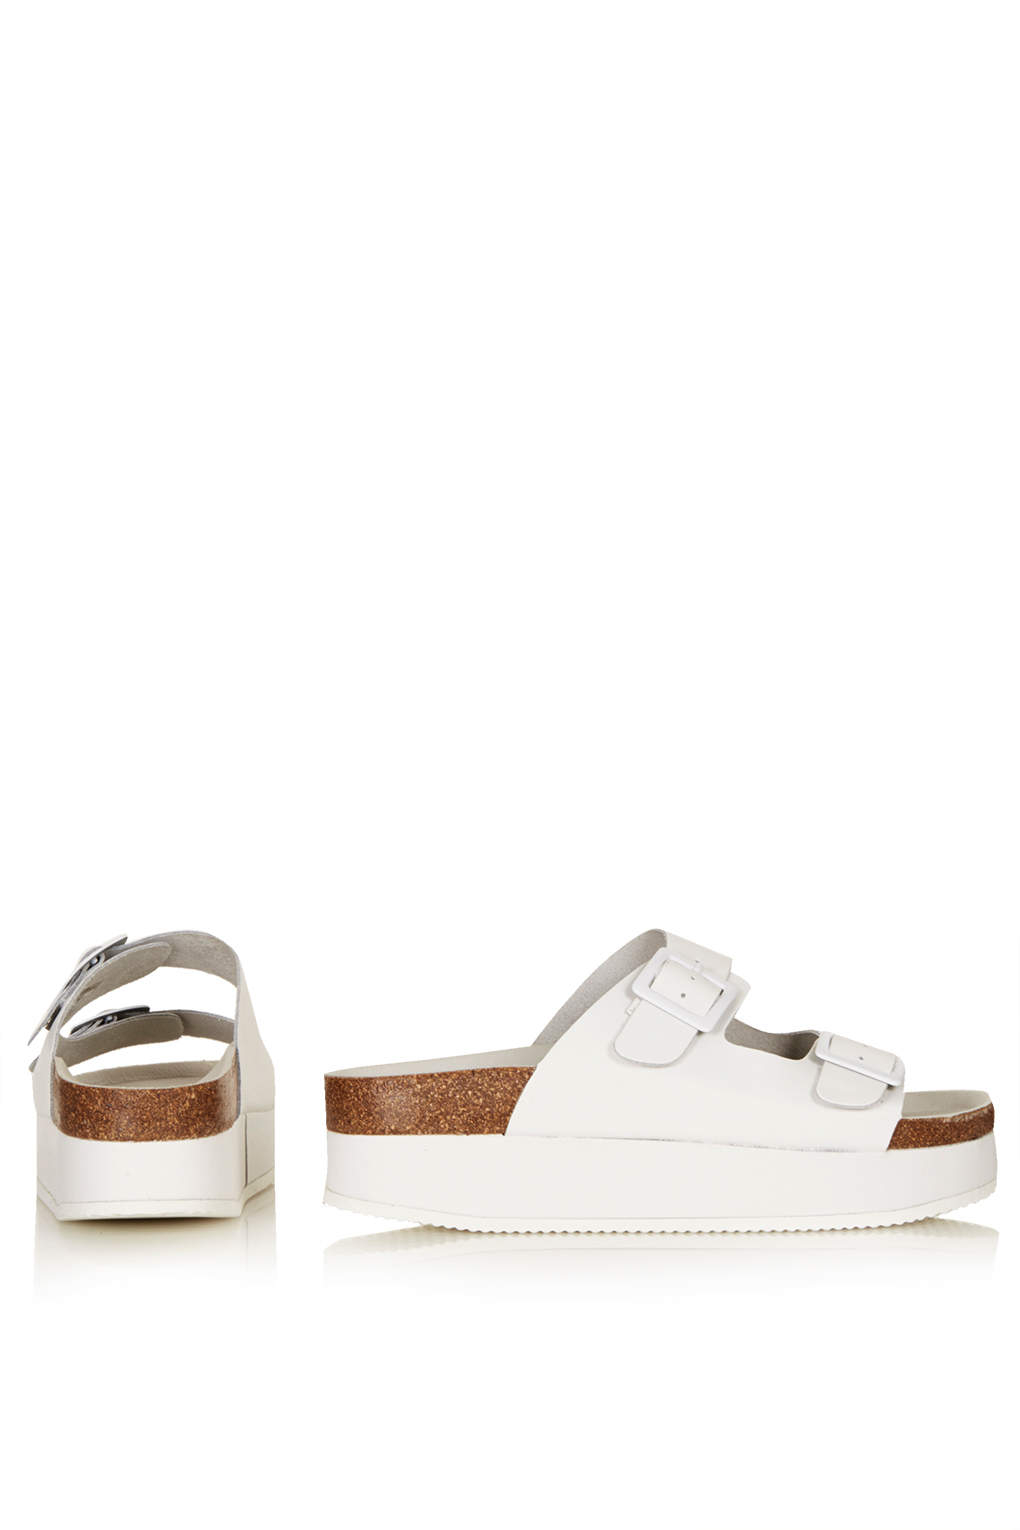 Lyst Topshop Fang Double Buckle Flatform Sandals In White